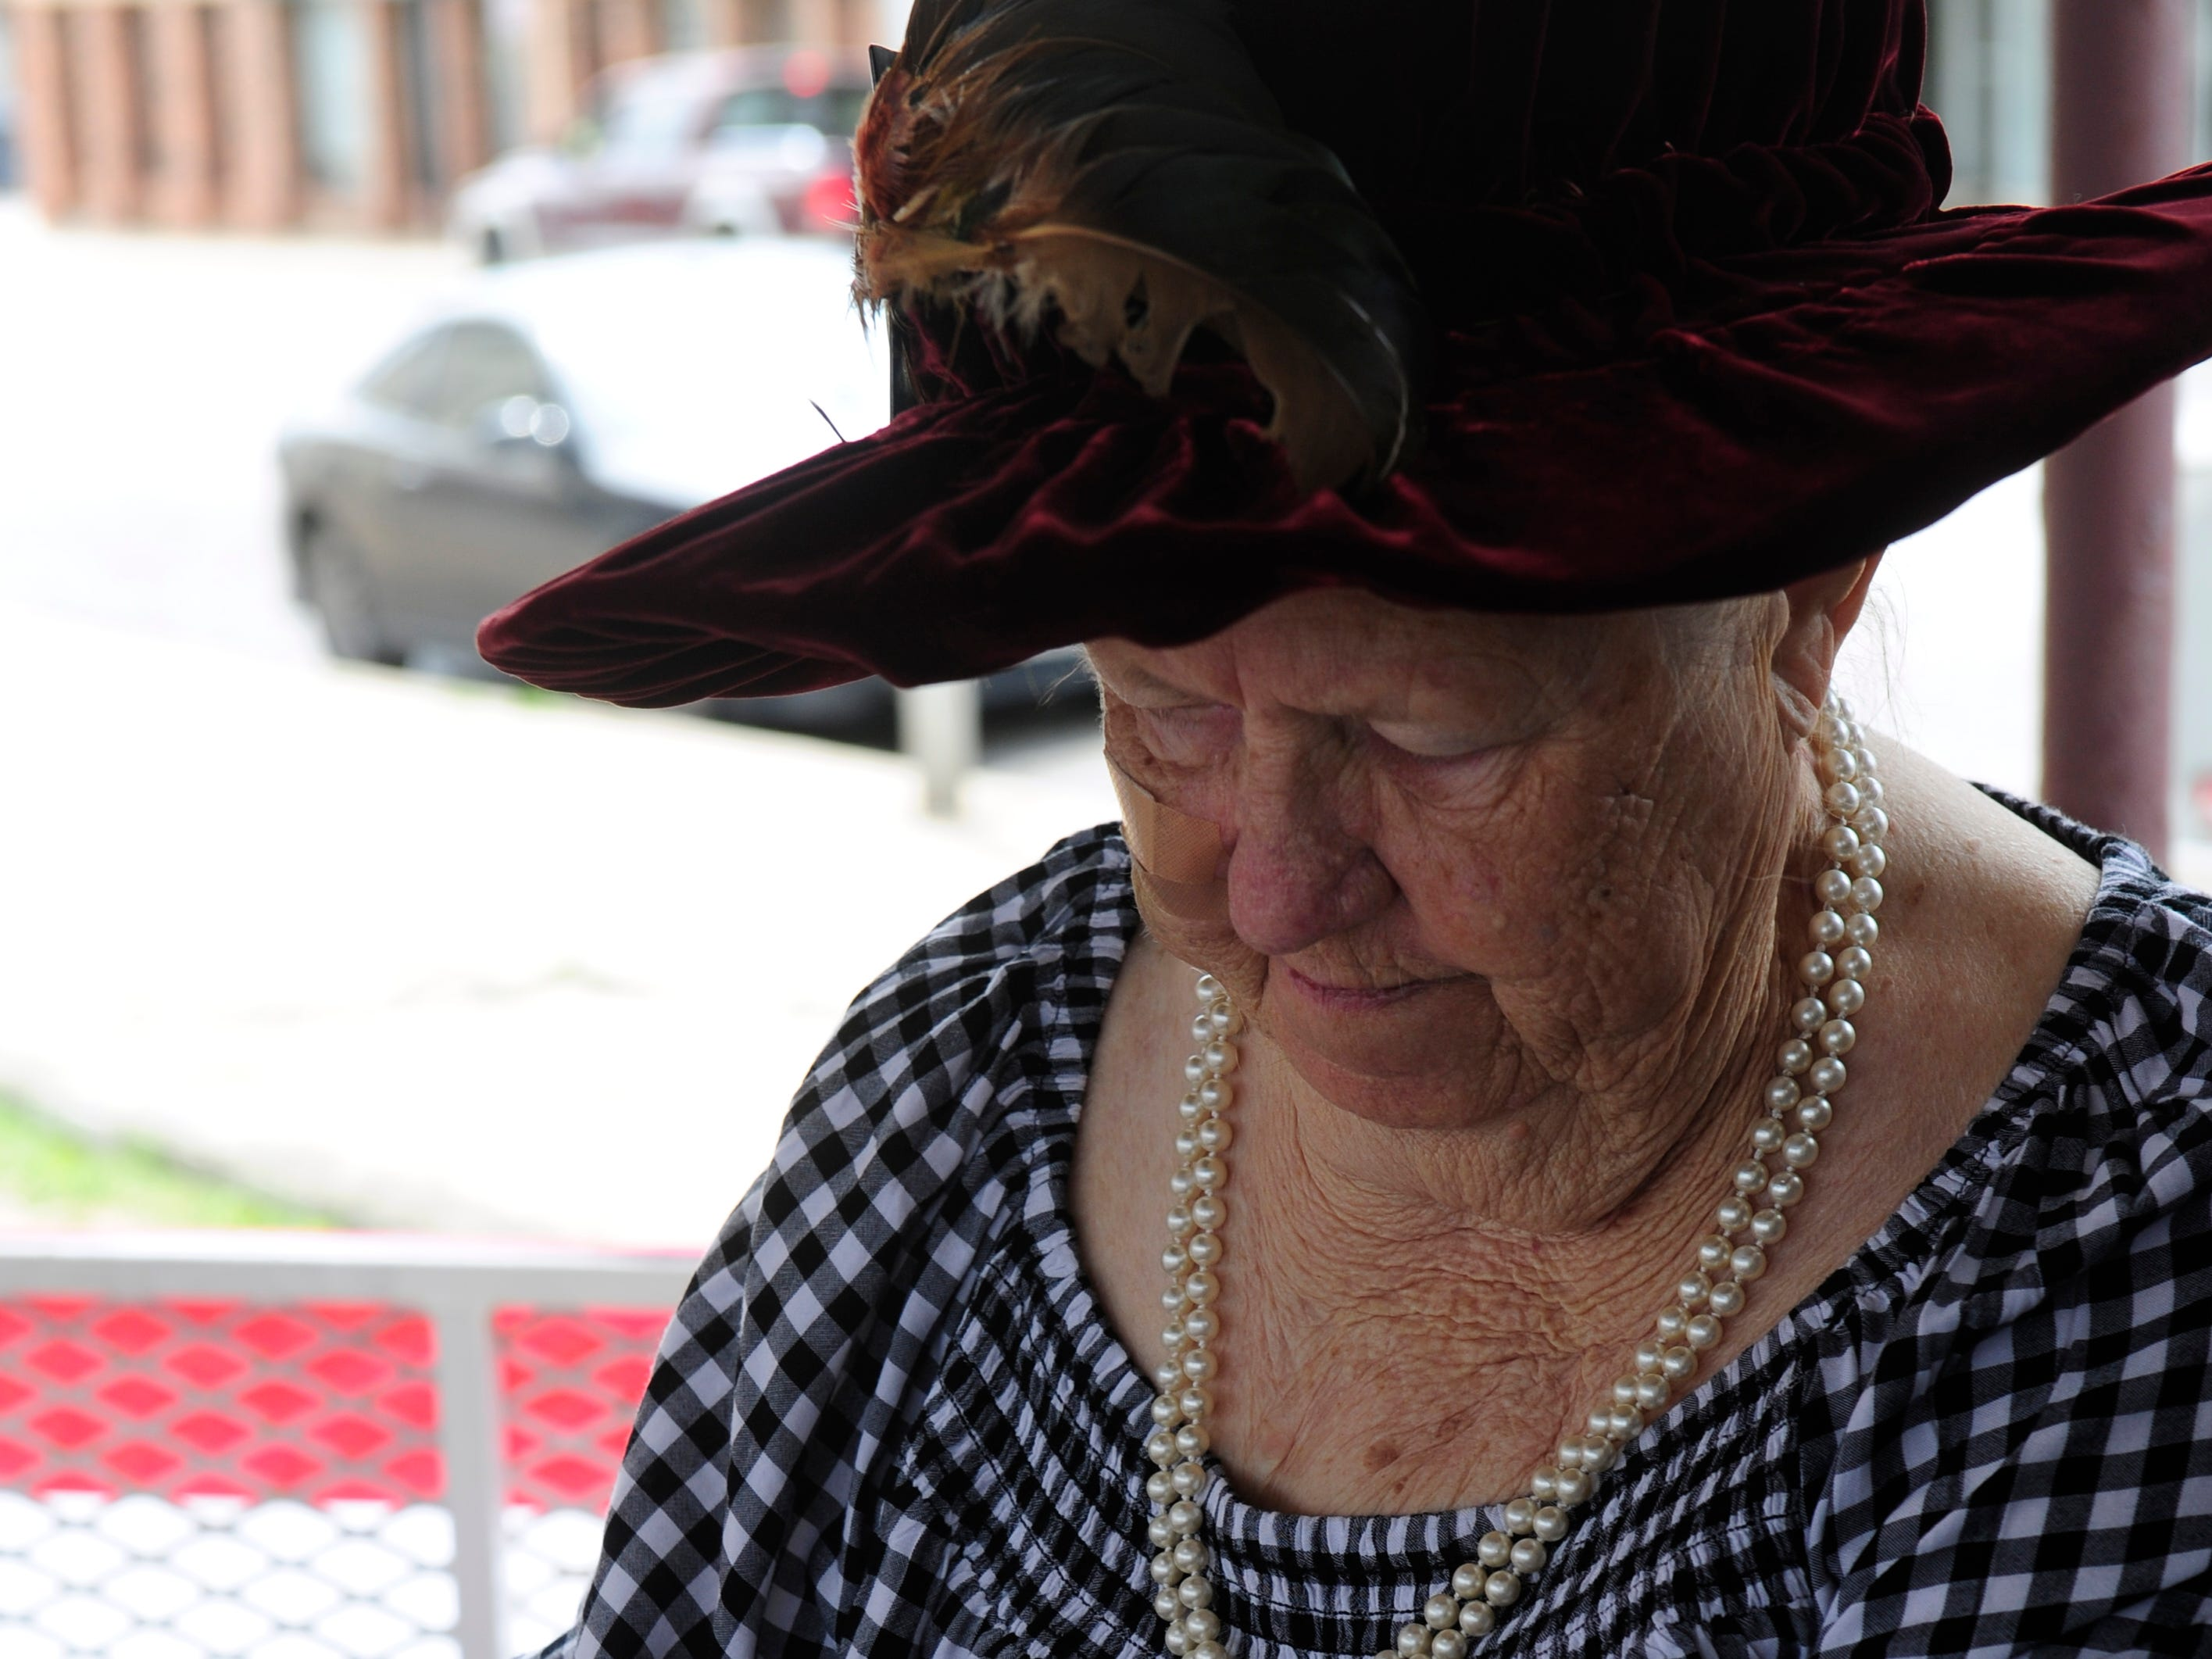 Jeane Pruett, a local historian and former mayor of Ranger, re-enacts the signing of the 1919 town charter Saturday April 6, 2019. Parades, live music, a time capsule and other activities marked the centennial celebration for Ranger over the weekend.